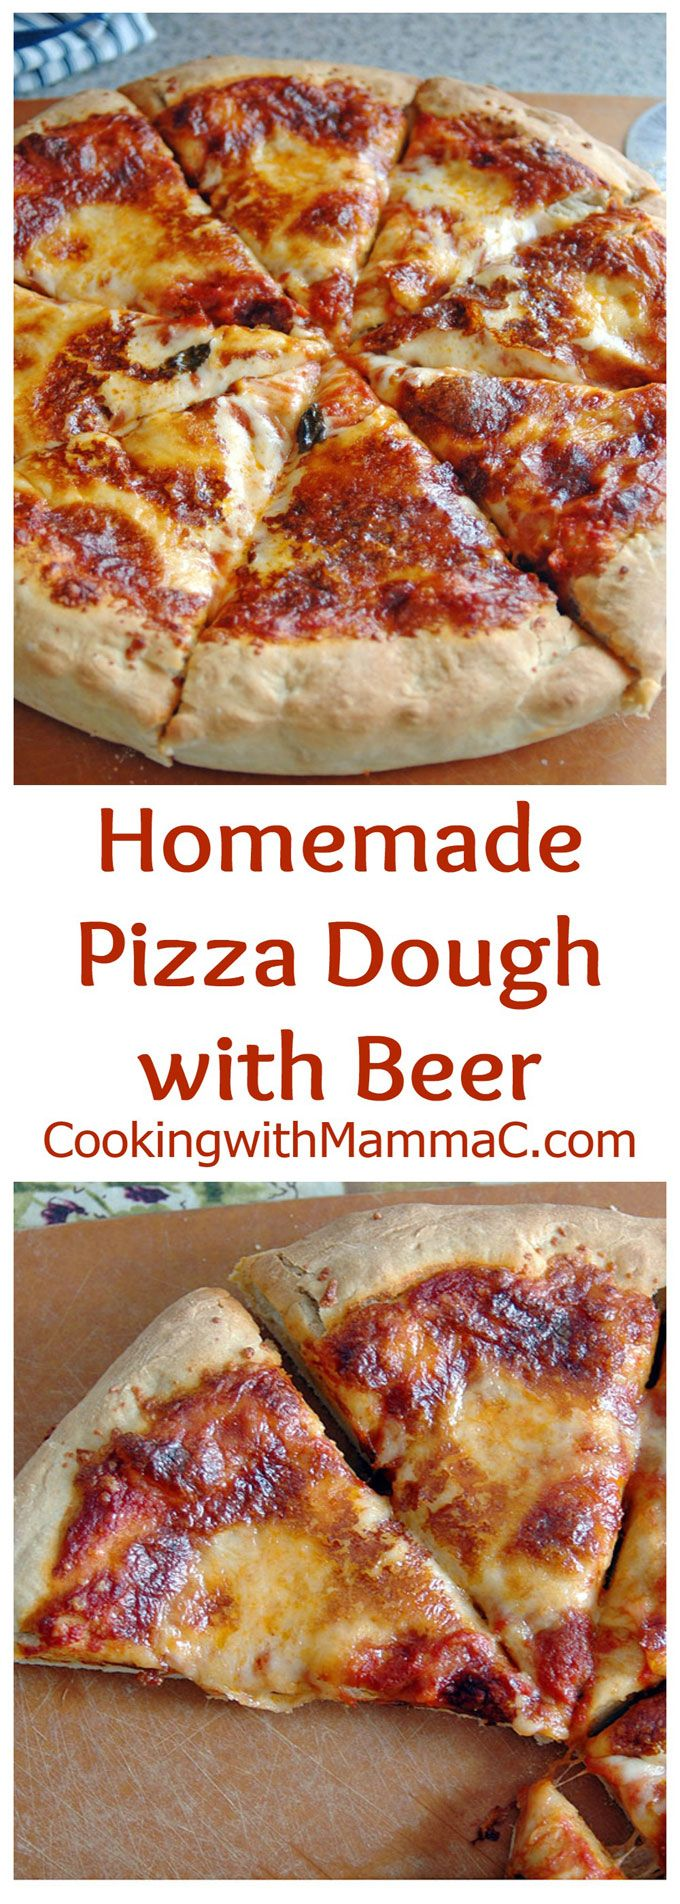 Homemade Pizza Dough with Beer - Just 5-10 minutes of kneading and one hour of rising will get you the most delicious dough!